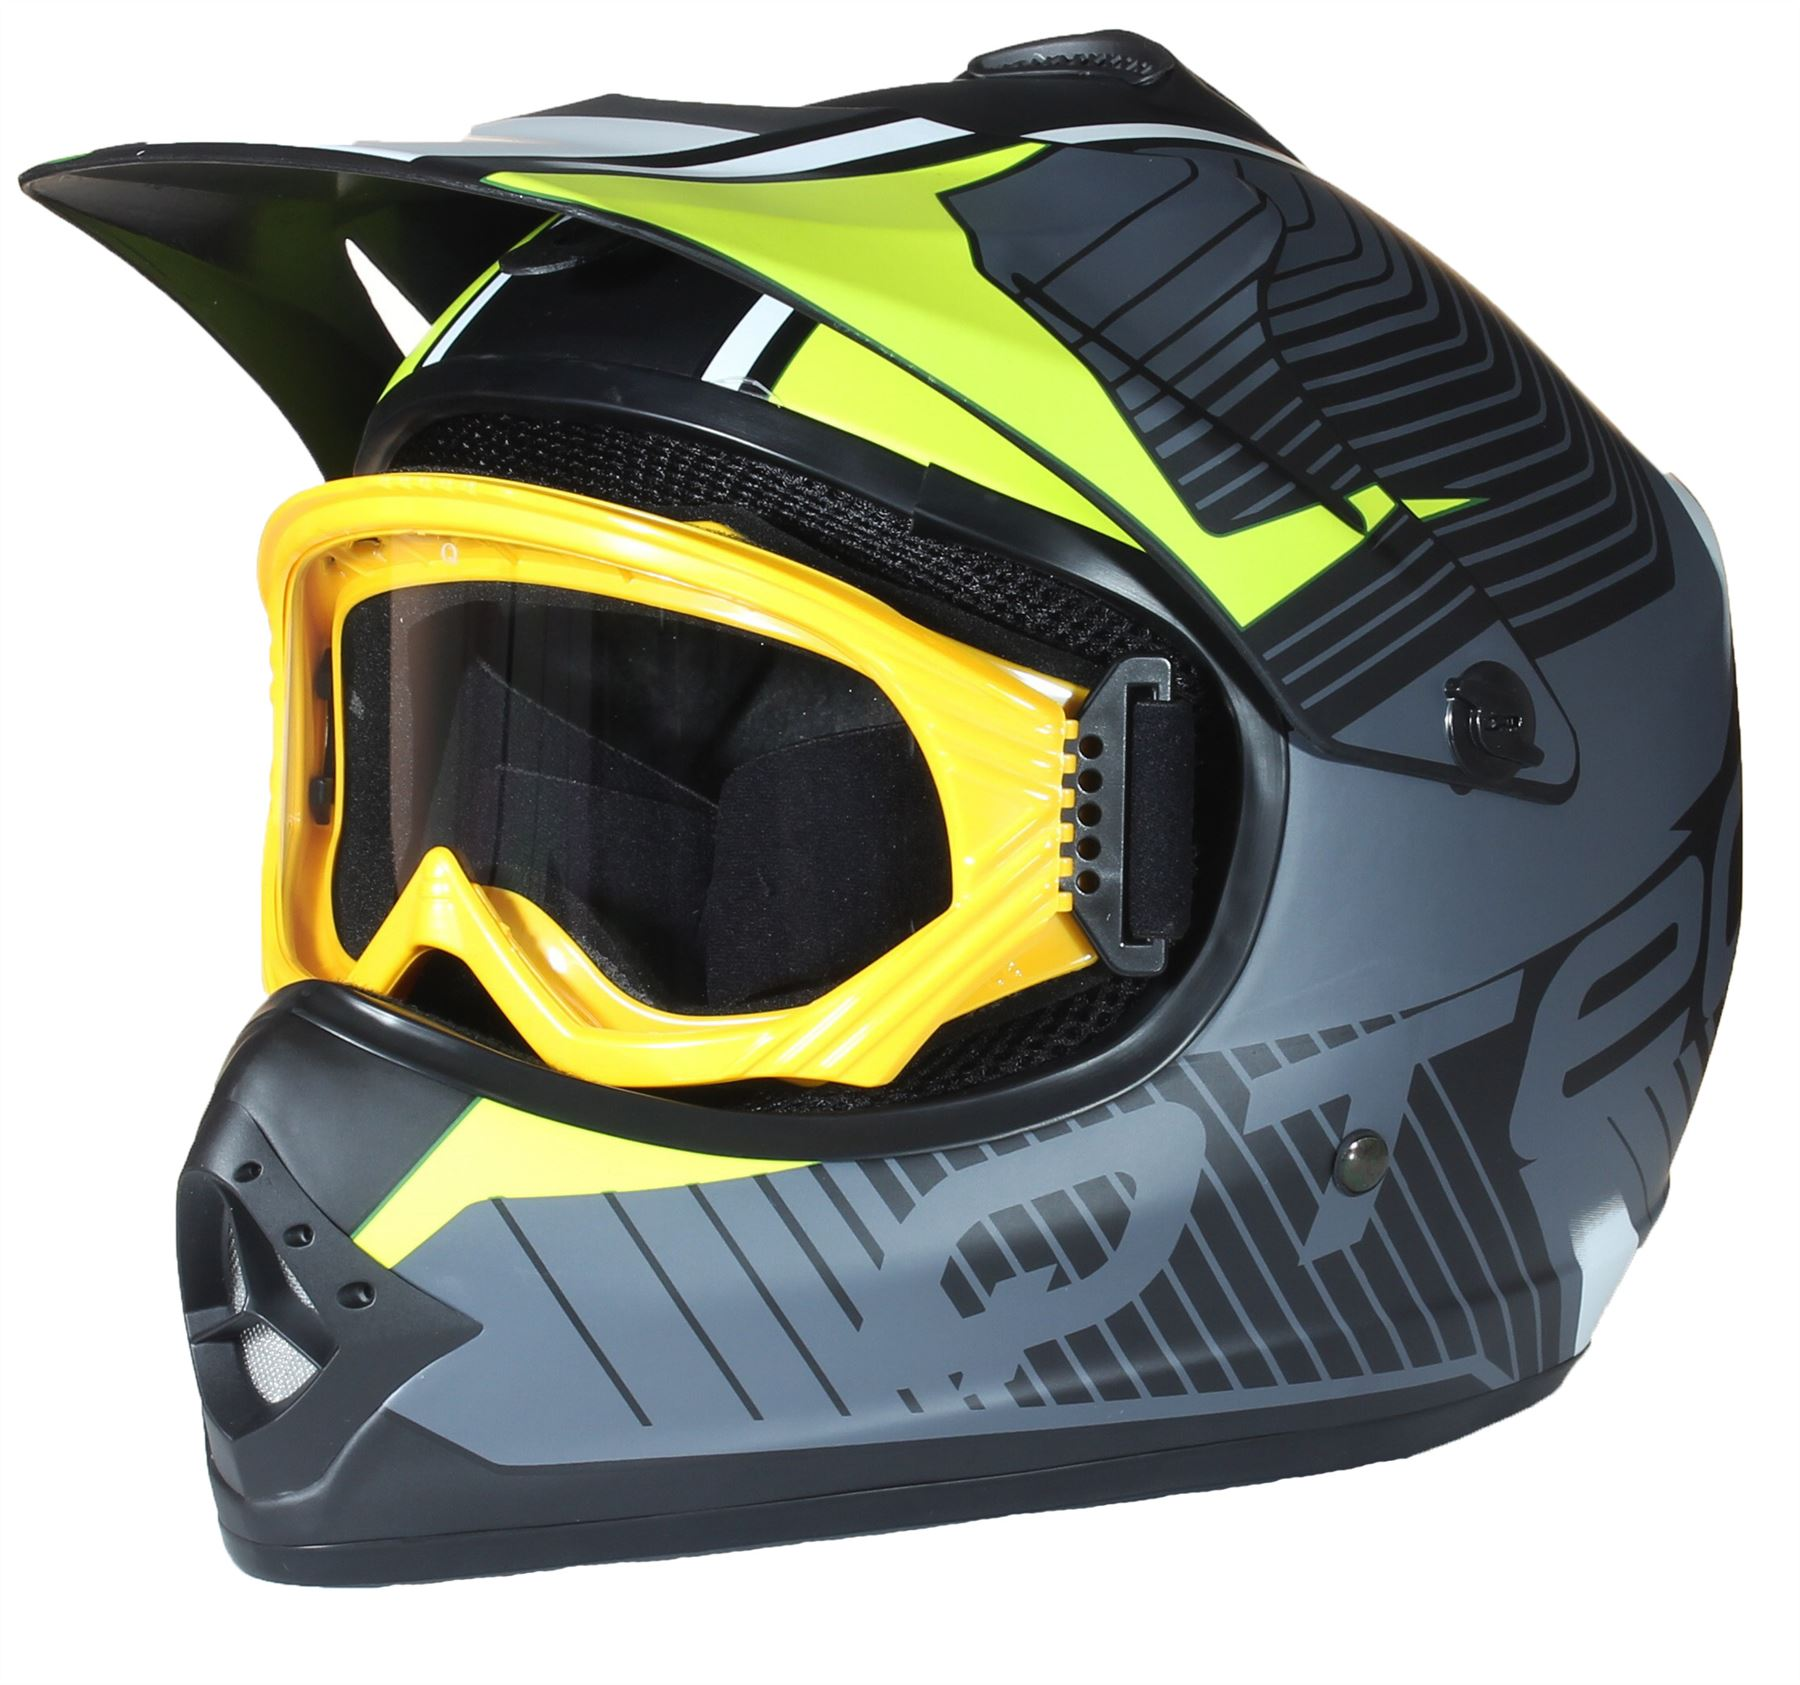 casque de moto pour enfant avec lunettes de protection motocross cross noir mate ebay. Black Bedroom Furniture Sets. Home Design Ideas